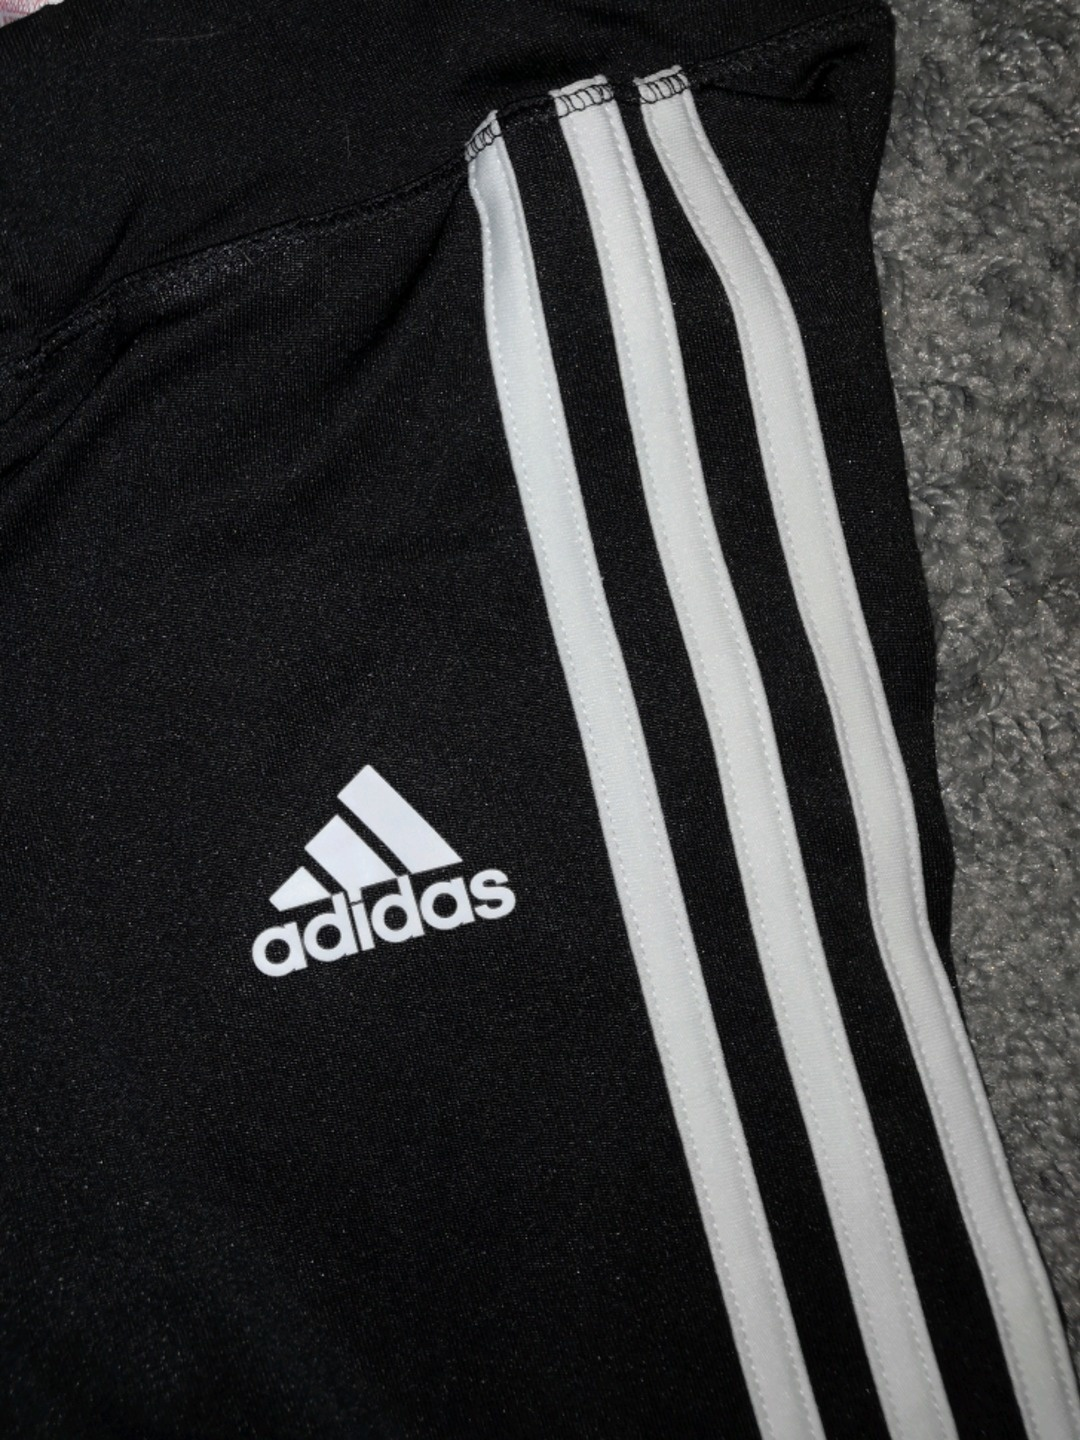 Women's sportswear - ADIDAS photo 3